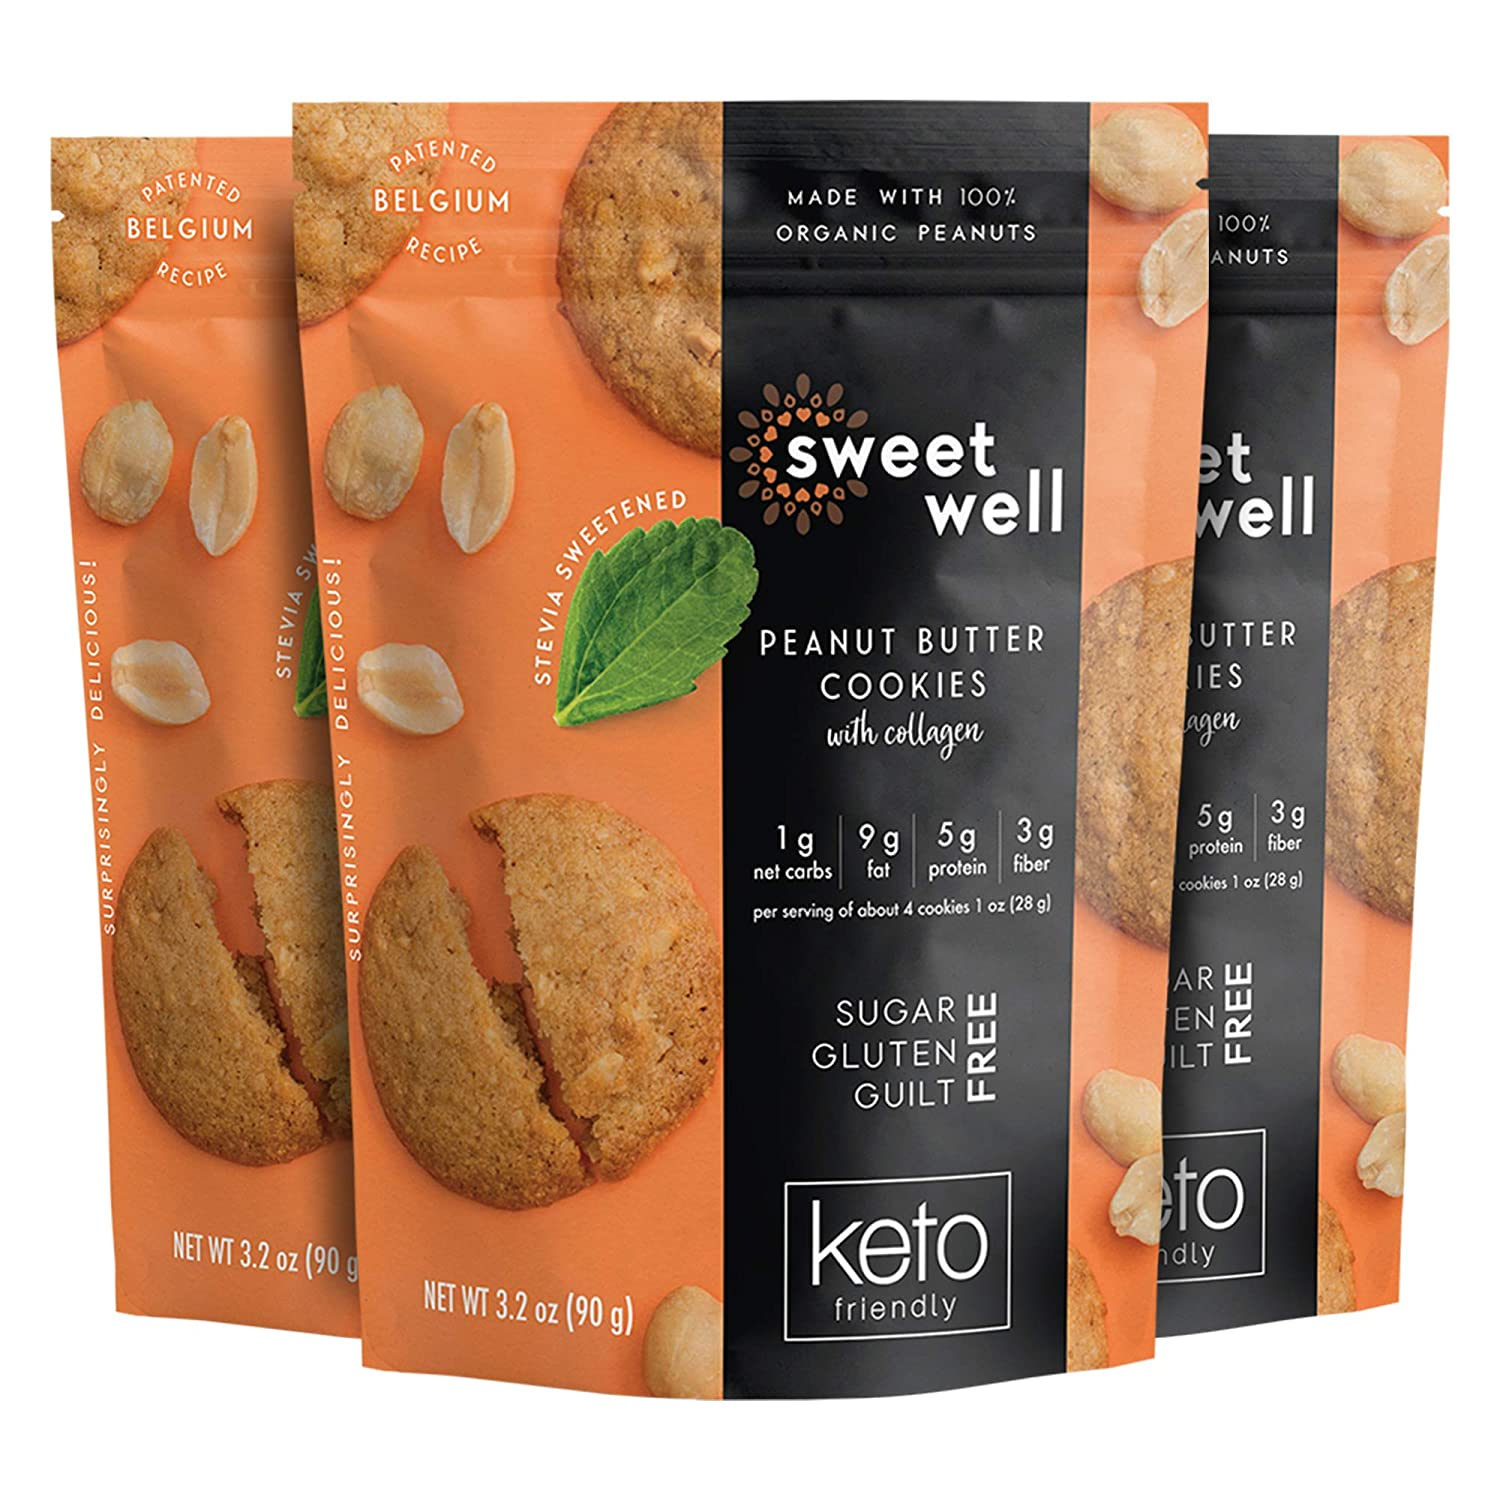 Sweetwell Peanut Butter Cookies, Sugar-Free, Keto-Friendly Snack with Collagen, Stevia-Sweetened Cookie Pack (3-Pack)